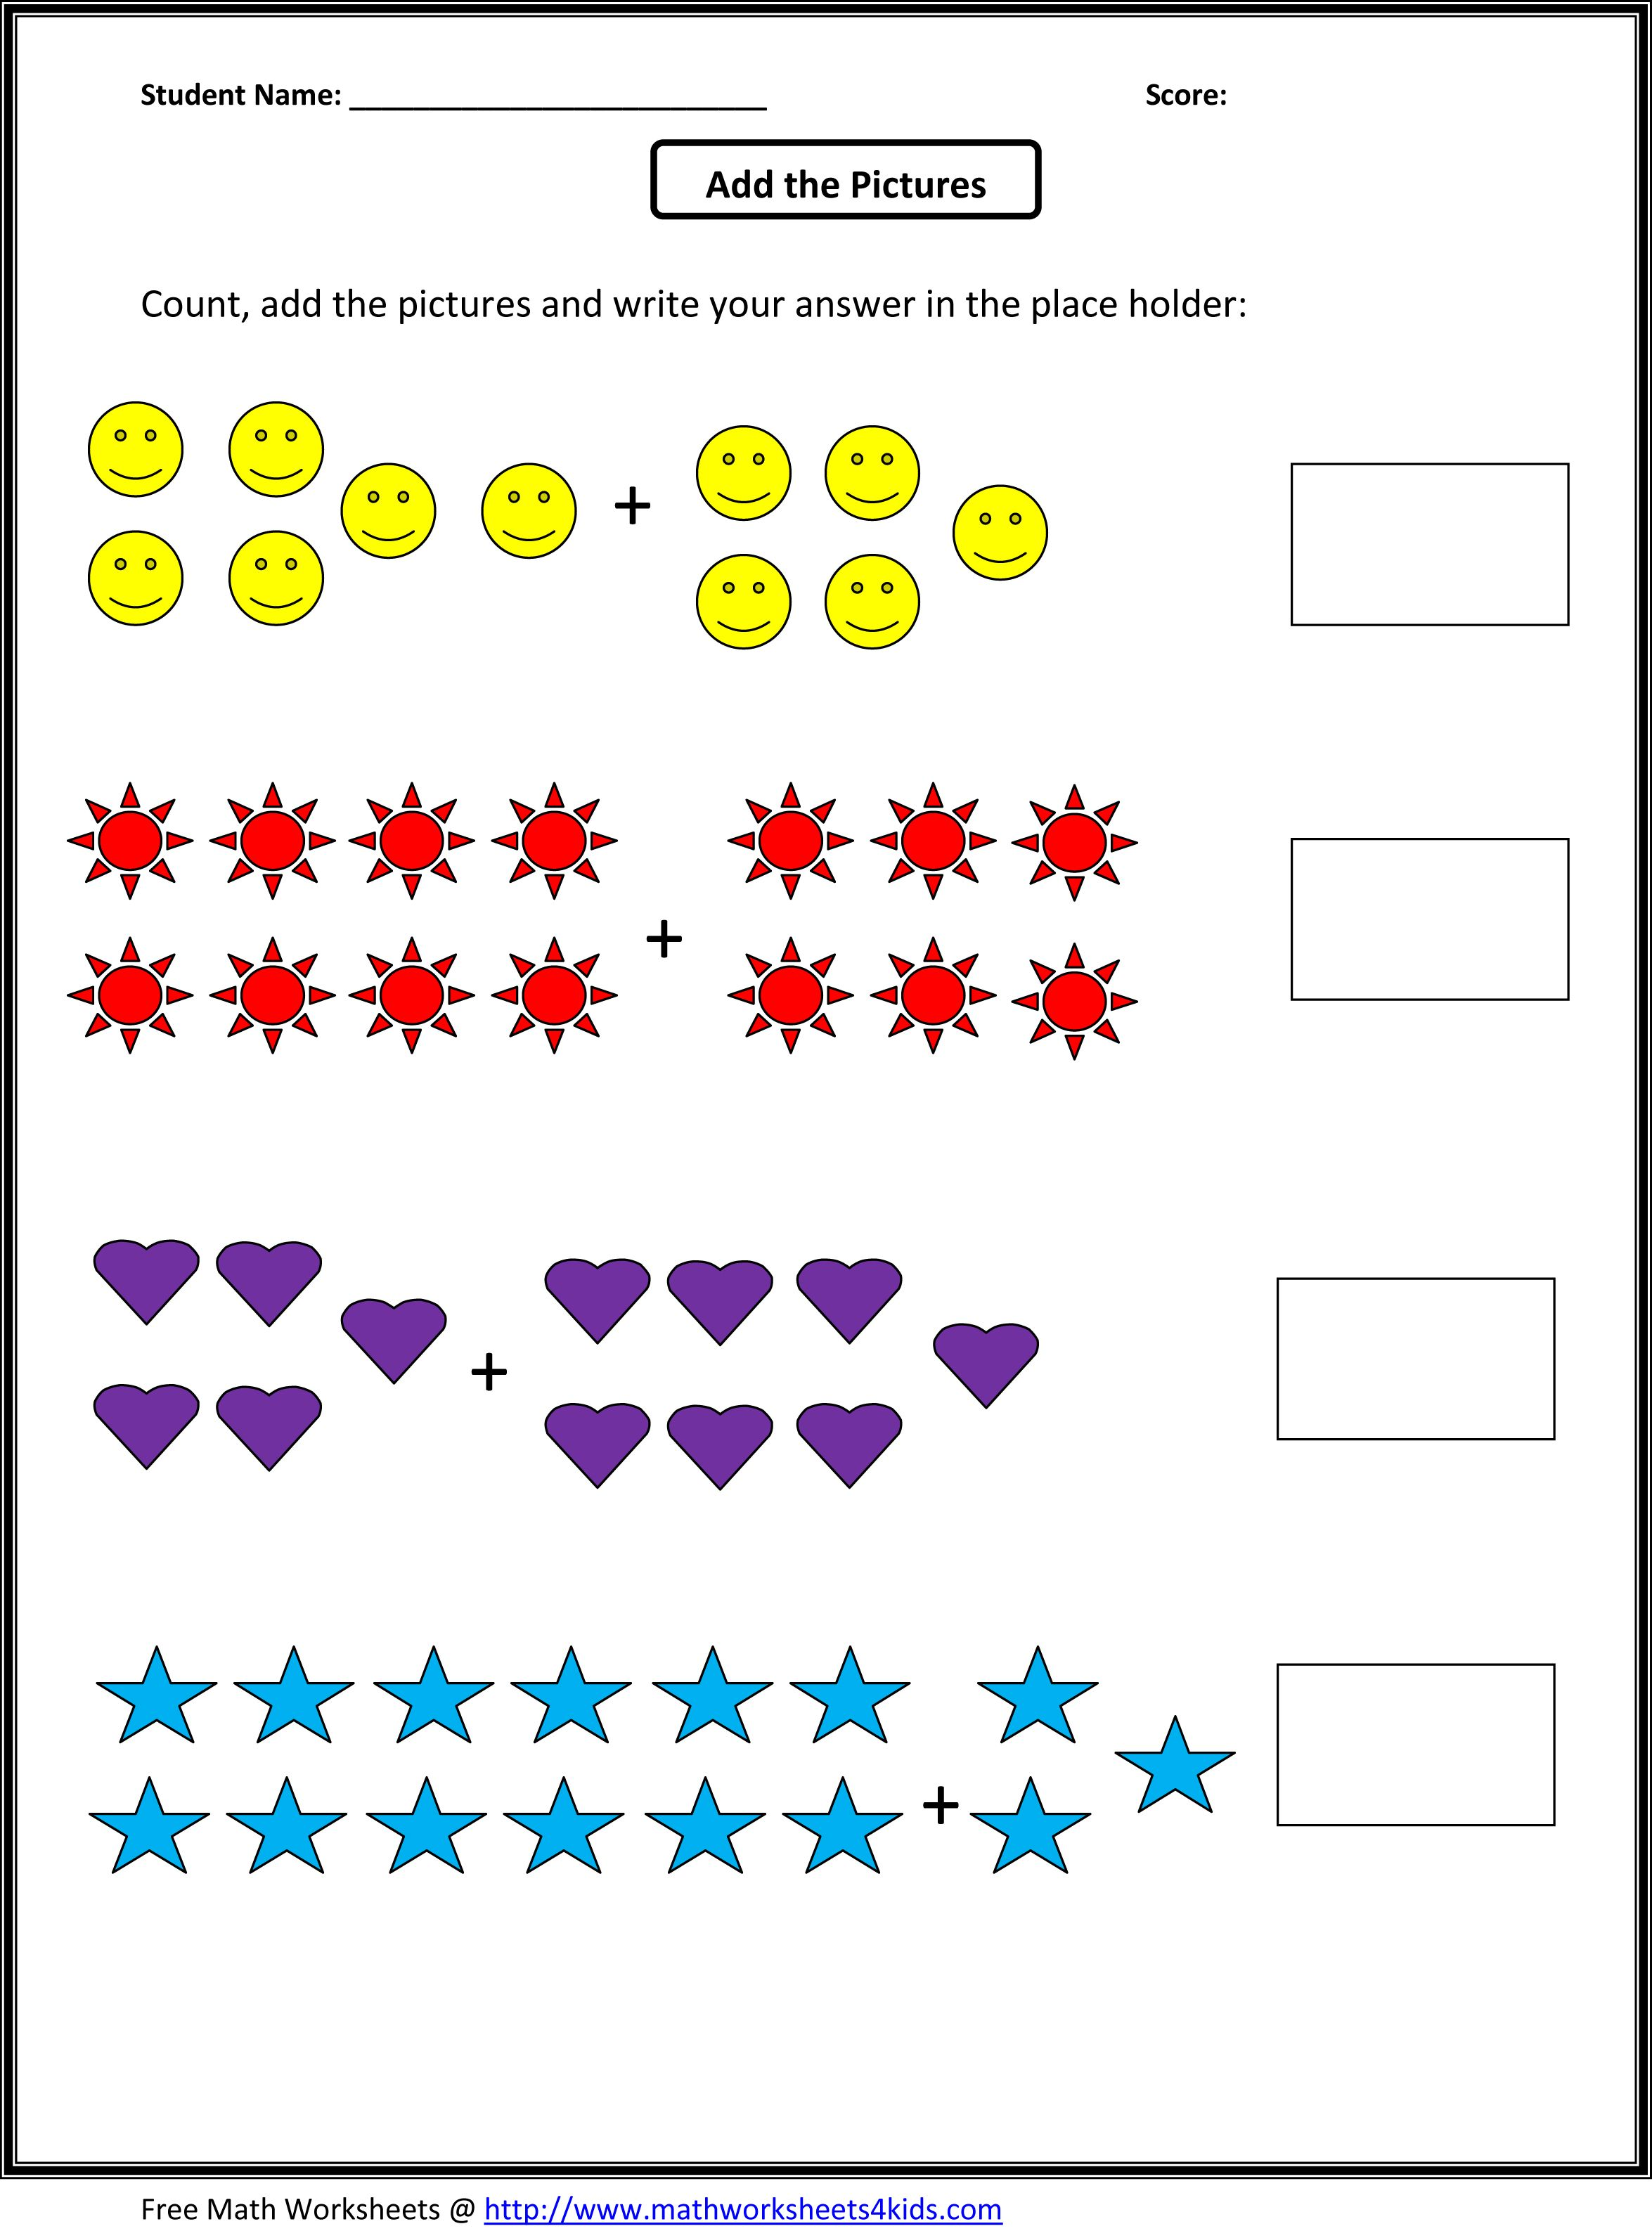 Aldiablosus  Pretty Worksheet For Math Grade   Coffemix With Lovely  Images About School On Pinterest  Mental Maths Worksheets  With Alluring Child Support Worksheet Colorado Also Mixtures Worksheet In Addition Counting Principle Worksheet And R Blends Worksheets As Well As Free Worksheets For First Grade Additionally Series And Parallel Circuits Worksheet With Answers From Coffemixcom With Aldiablosus  Lovely Worksheet For Math Grade   Coffemix With Alluring  Images About School On Pinterest  Mental Maths Worksheets  And Pretty Child Support Worksheet Colorado Also Mixtures Worksheet In Addition Counting Principle Worksheet From Coffemixcom